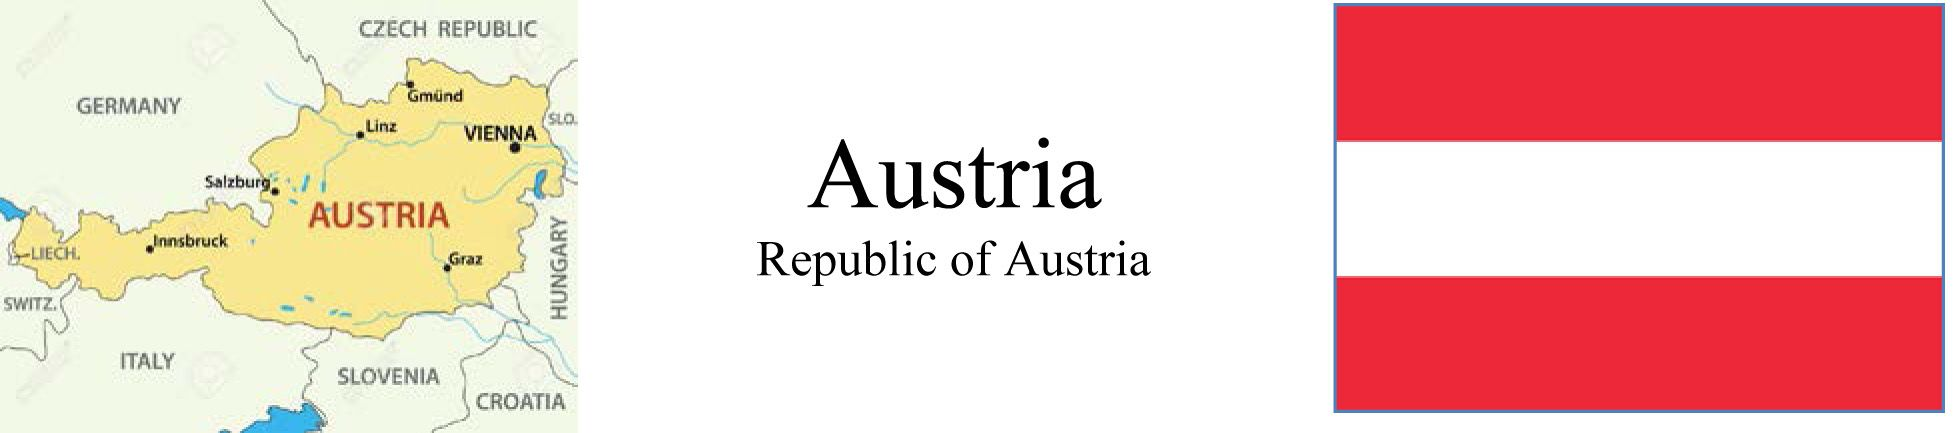 Map and Flag of Austria